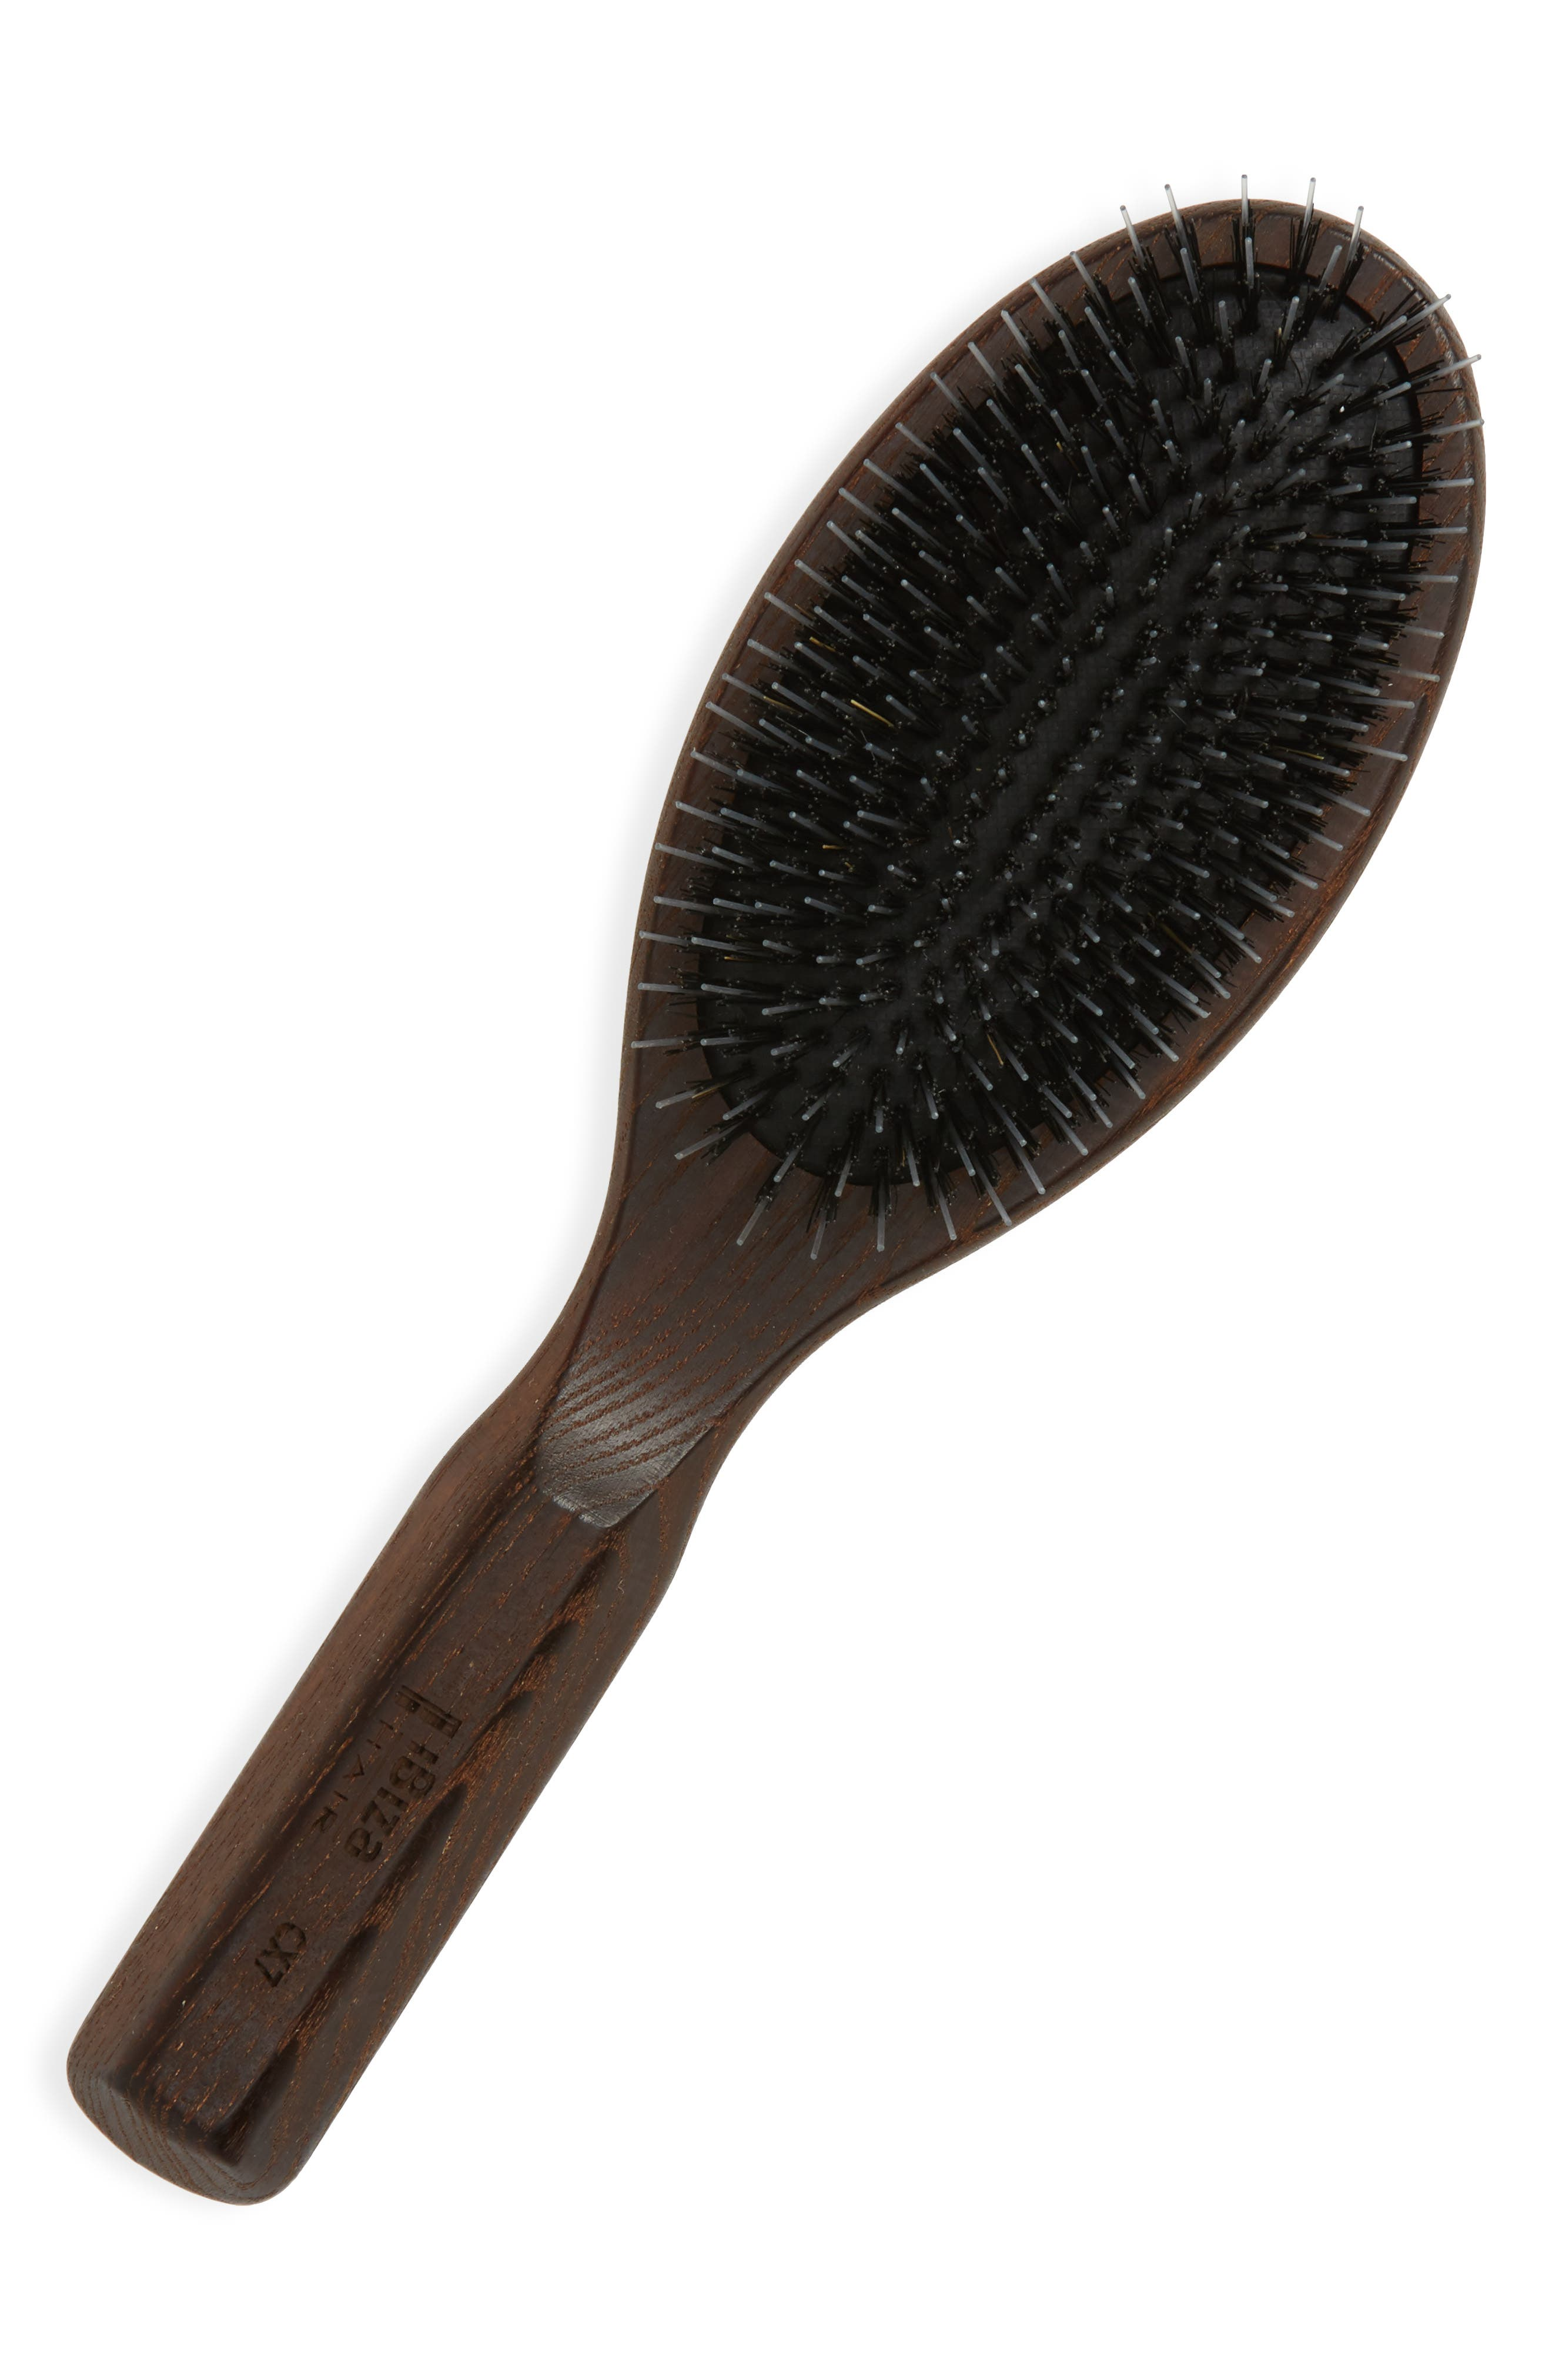 Hair CX7 Oval Handle Brush,                             Main thumbnail 1, color,                             No Color